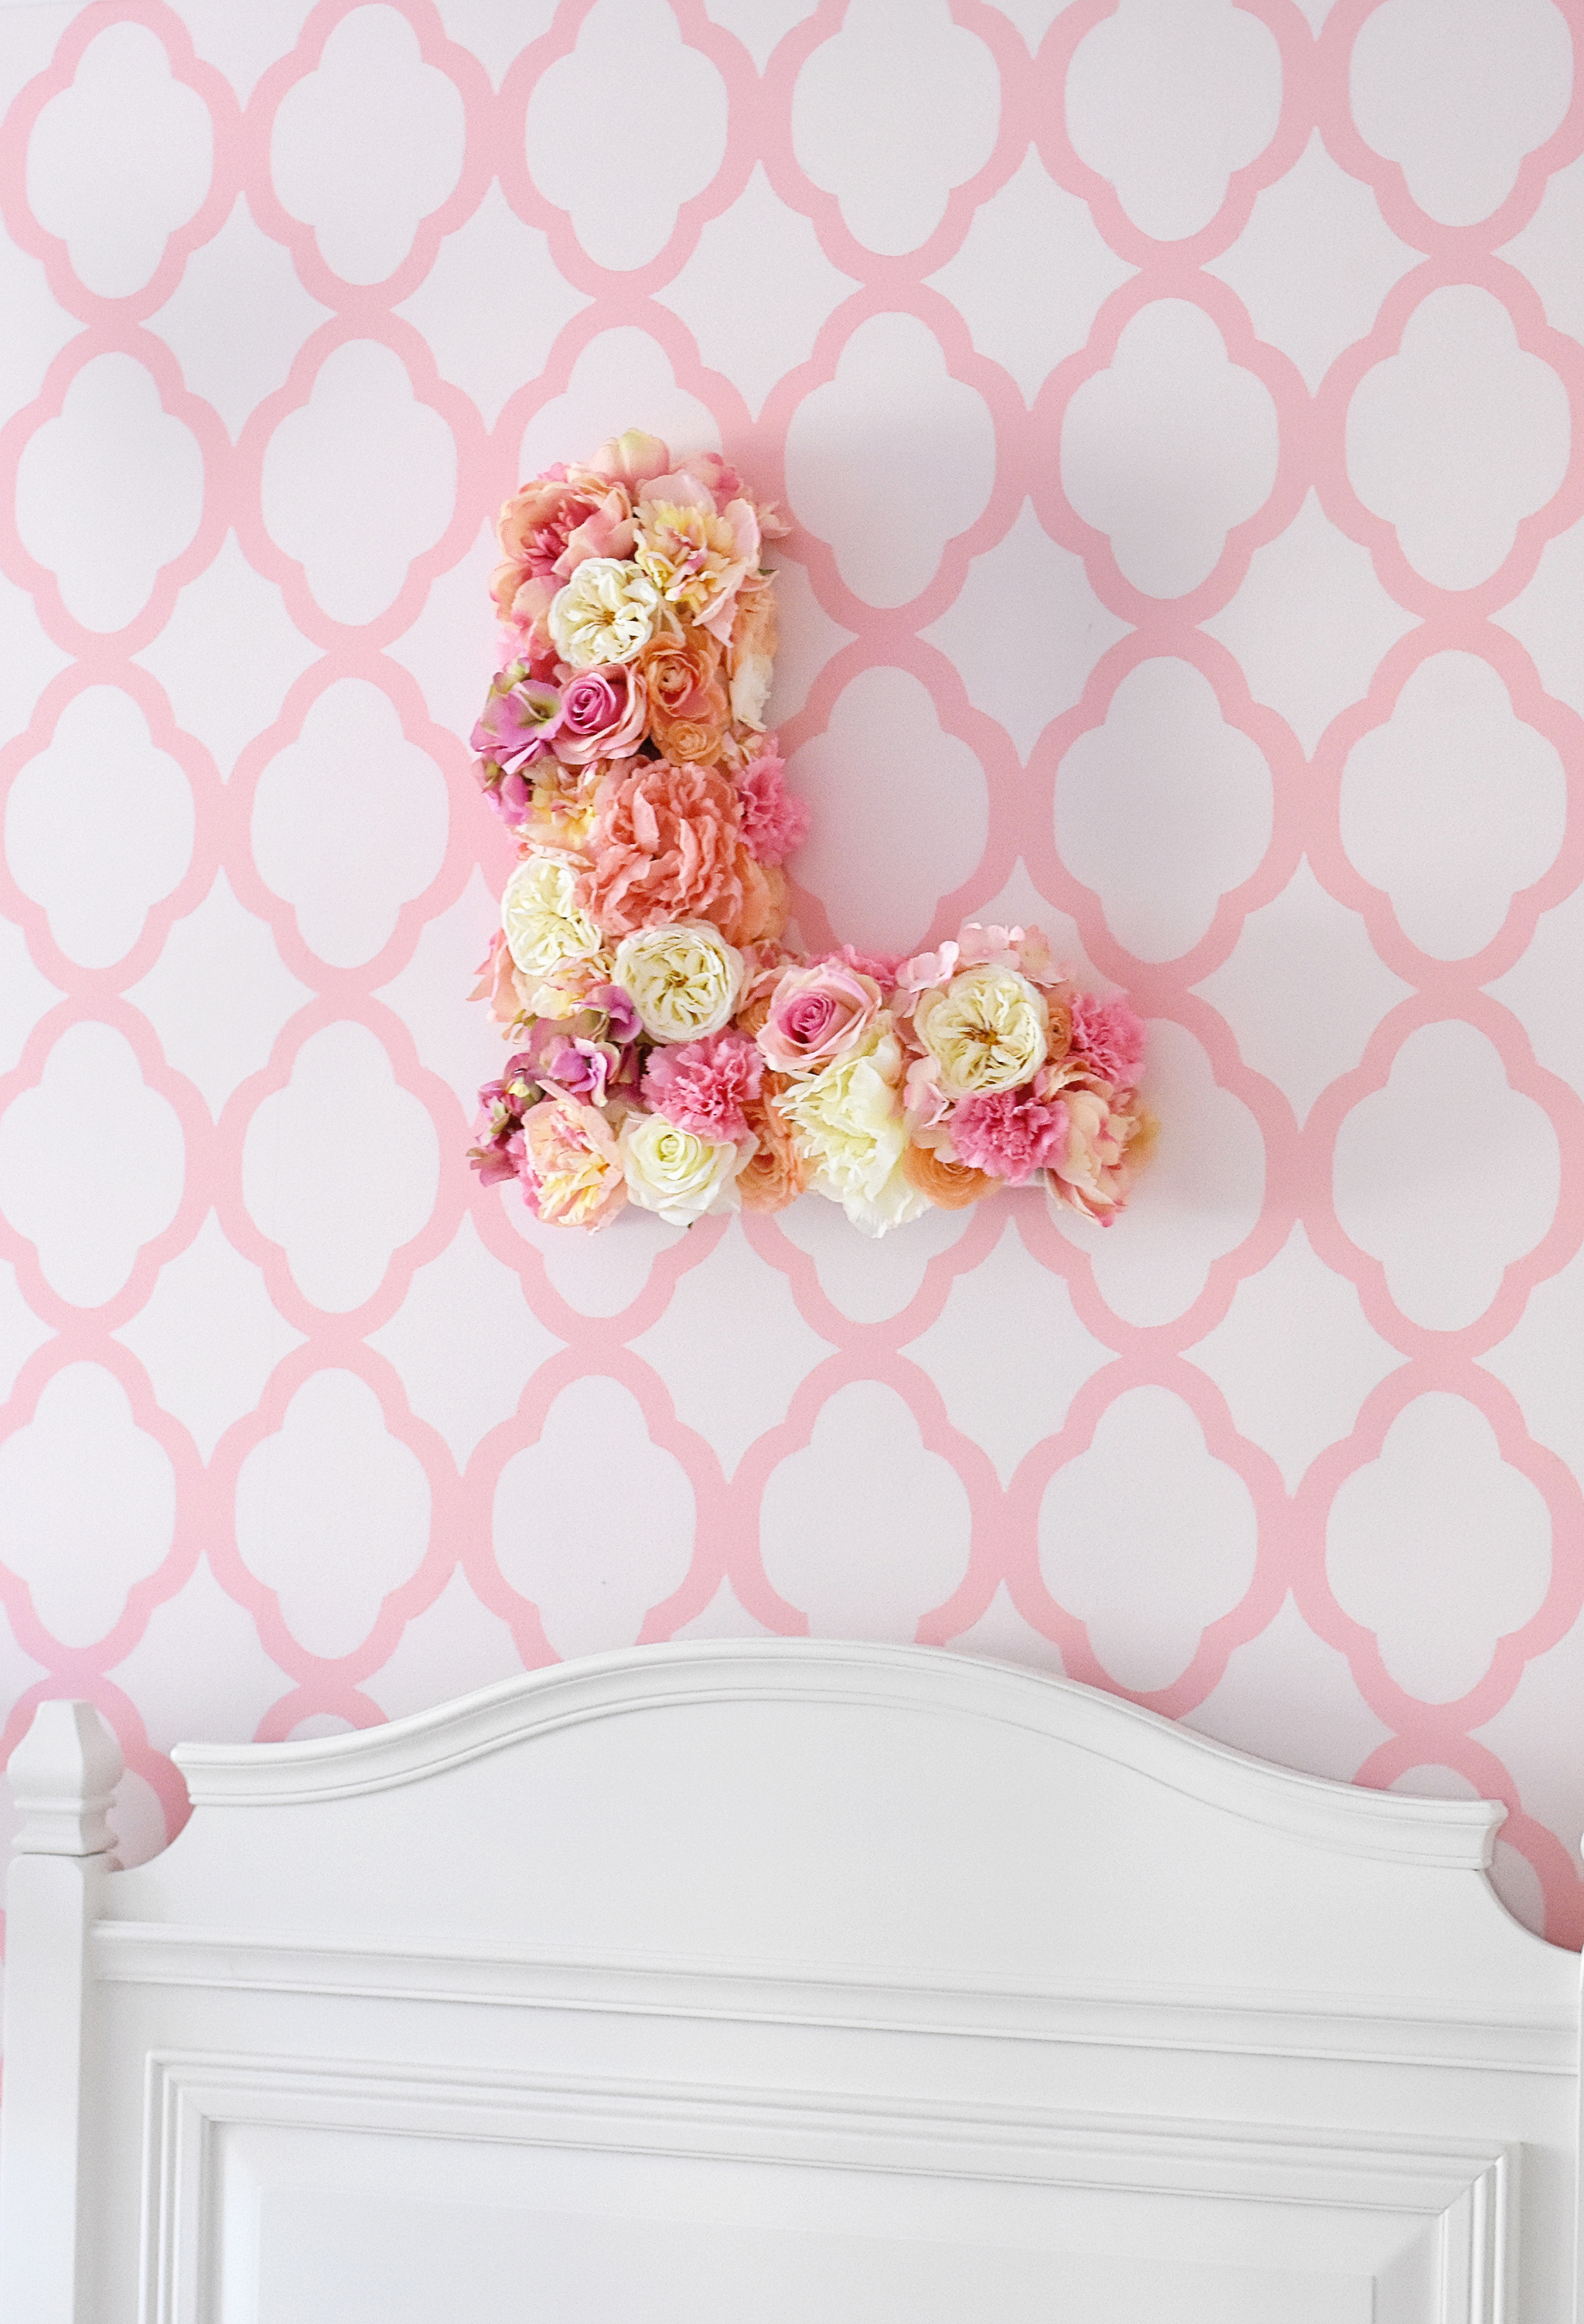 The finished product: A beautiful DIY floral letter wallhanging!